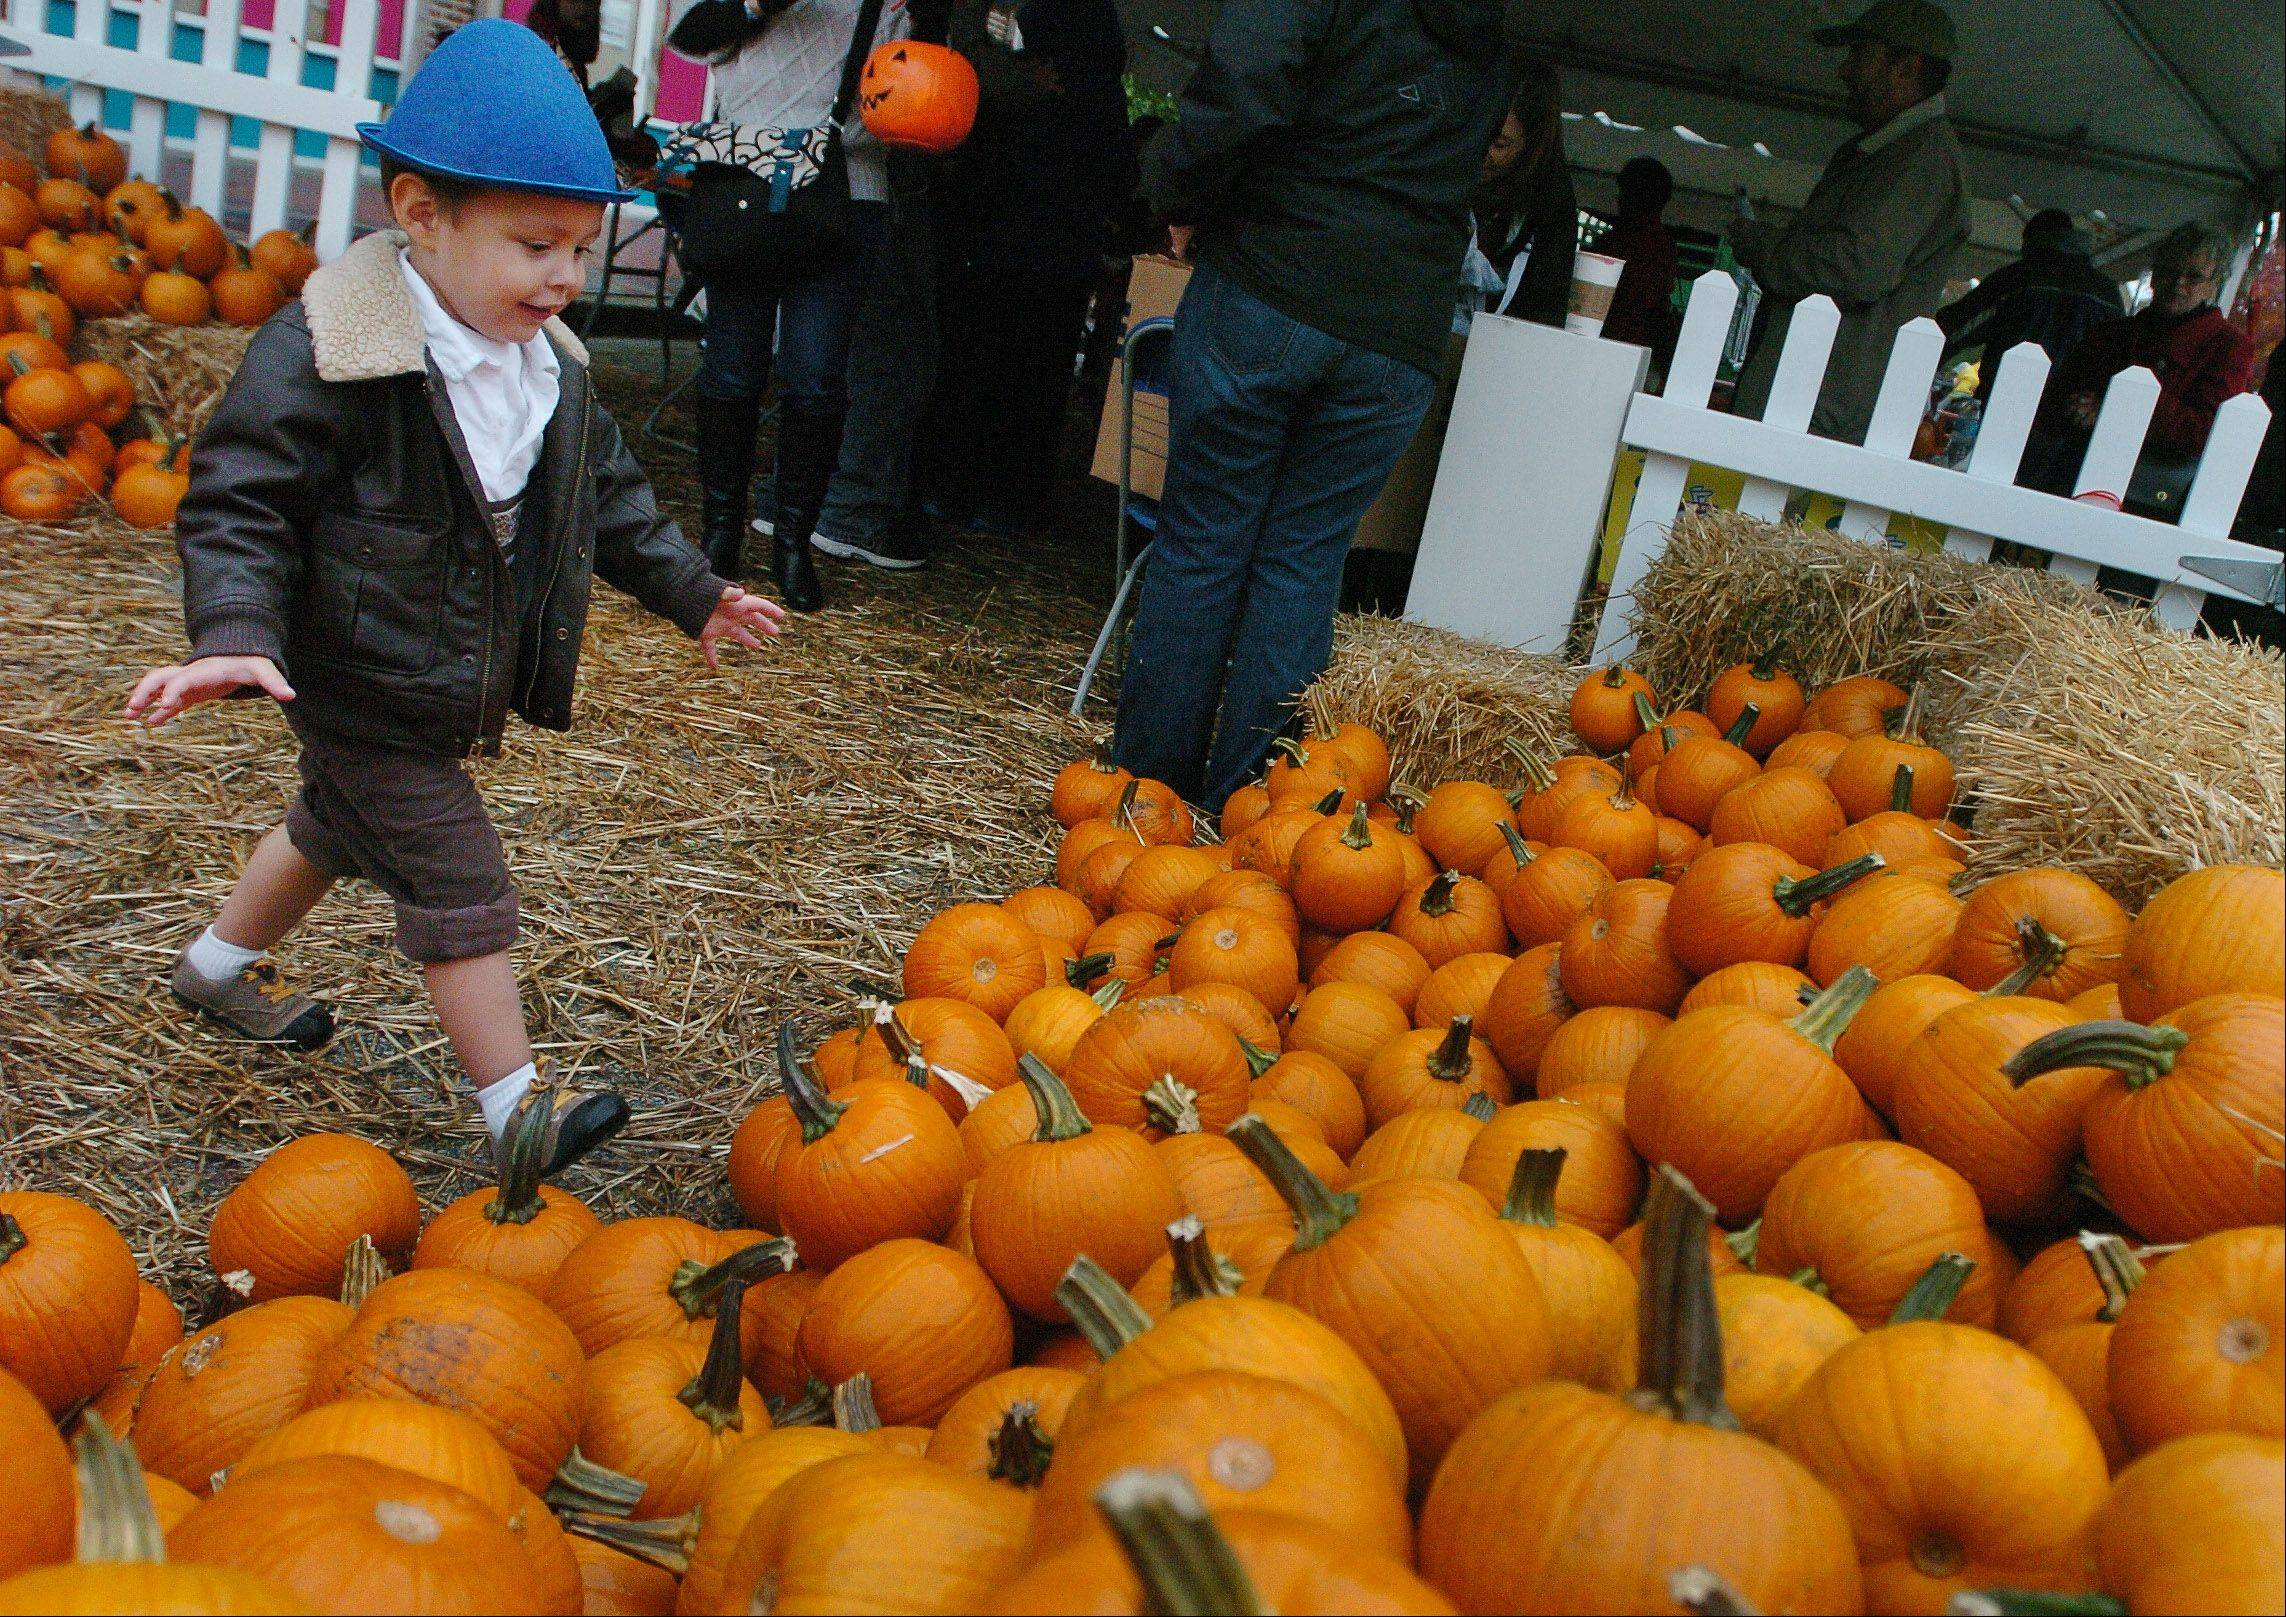 Ryan Putz of Wheeling can't wait to pick out a pumpkin to paint at the 2012 Mount Prospect Fall Fest.